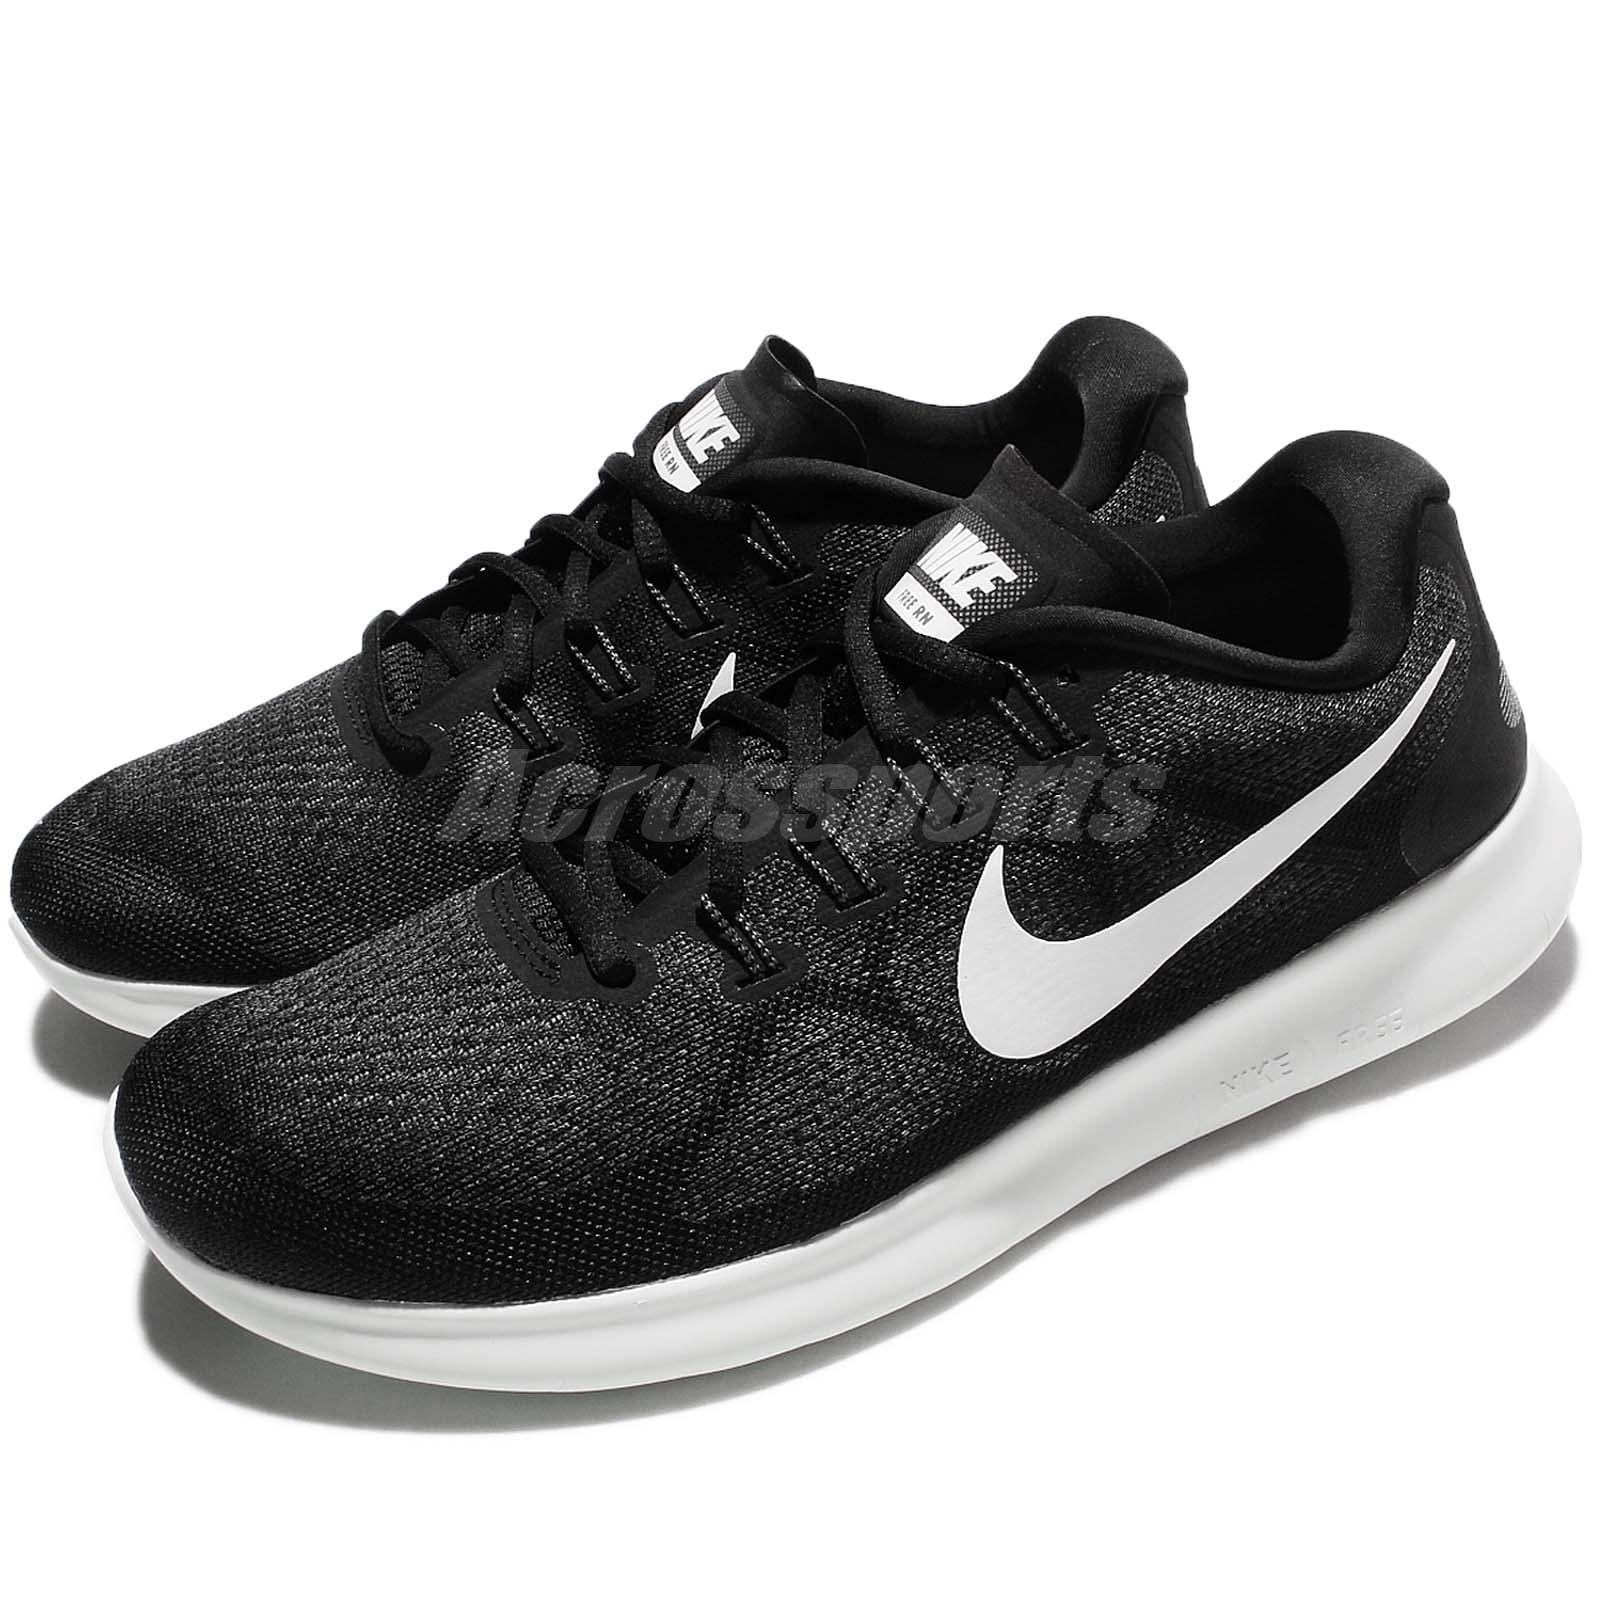 new style 5bf6a fe210 Details about Nike Free RN 2017 Run Black White Men Running Shoes Sneakers  Trainers 880839-001